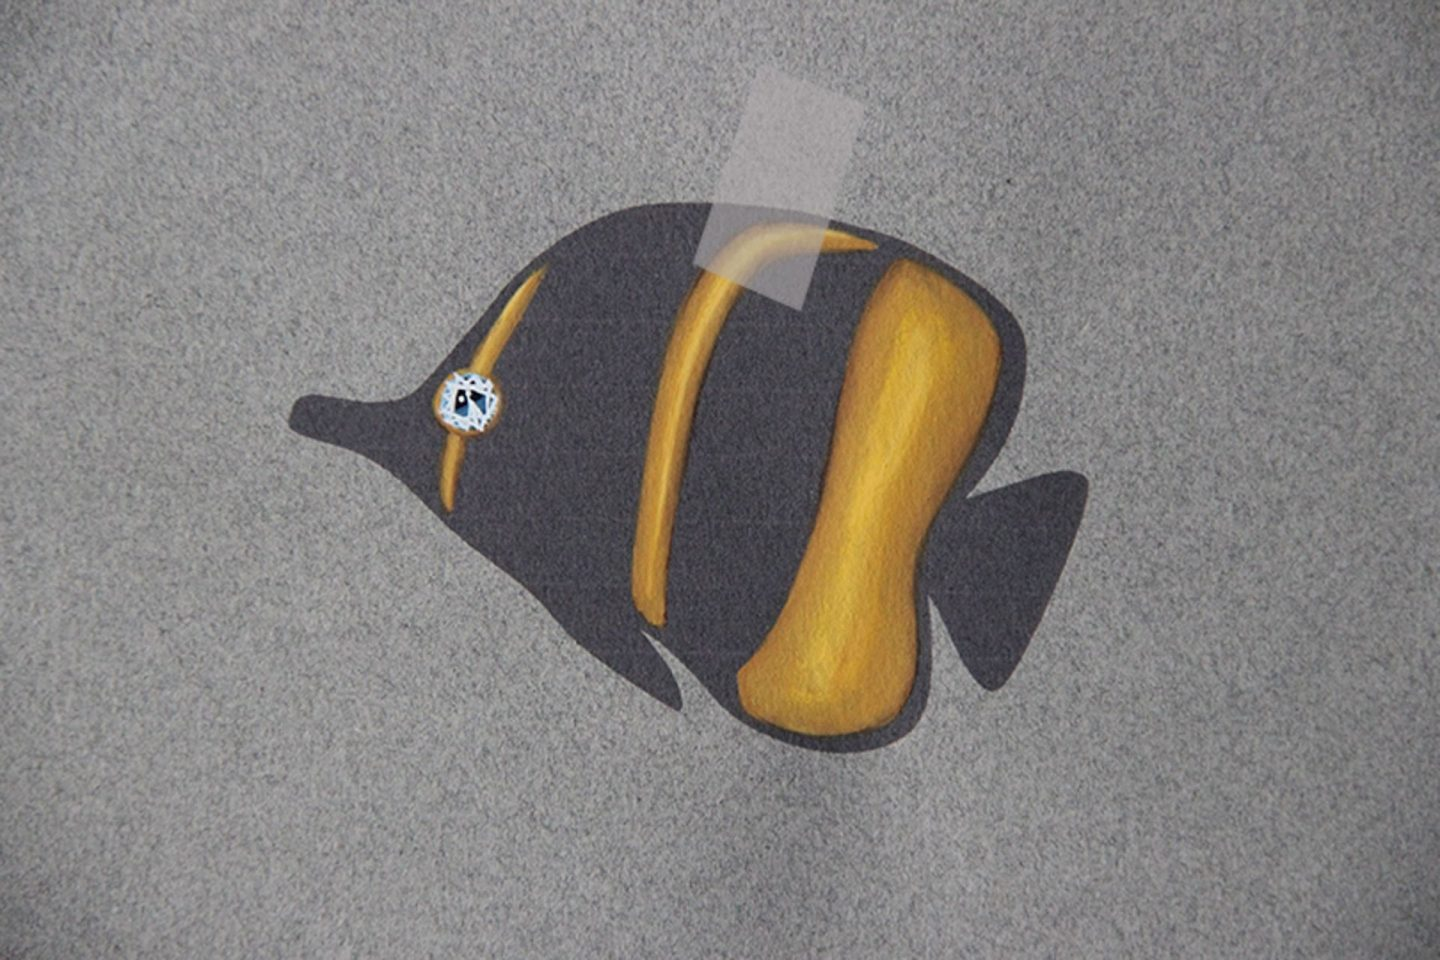 Painting of the drawing of an exotic fish paining black and gold with a sapphire precious stone set as its eye with sellotape on as if the fish is ready to be taped on someone's back as an April fool's prank.